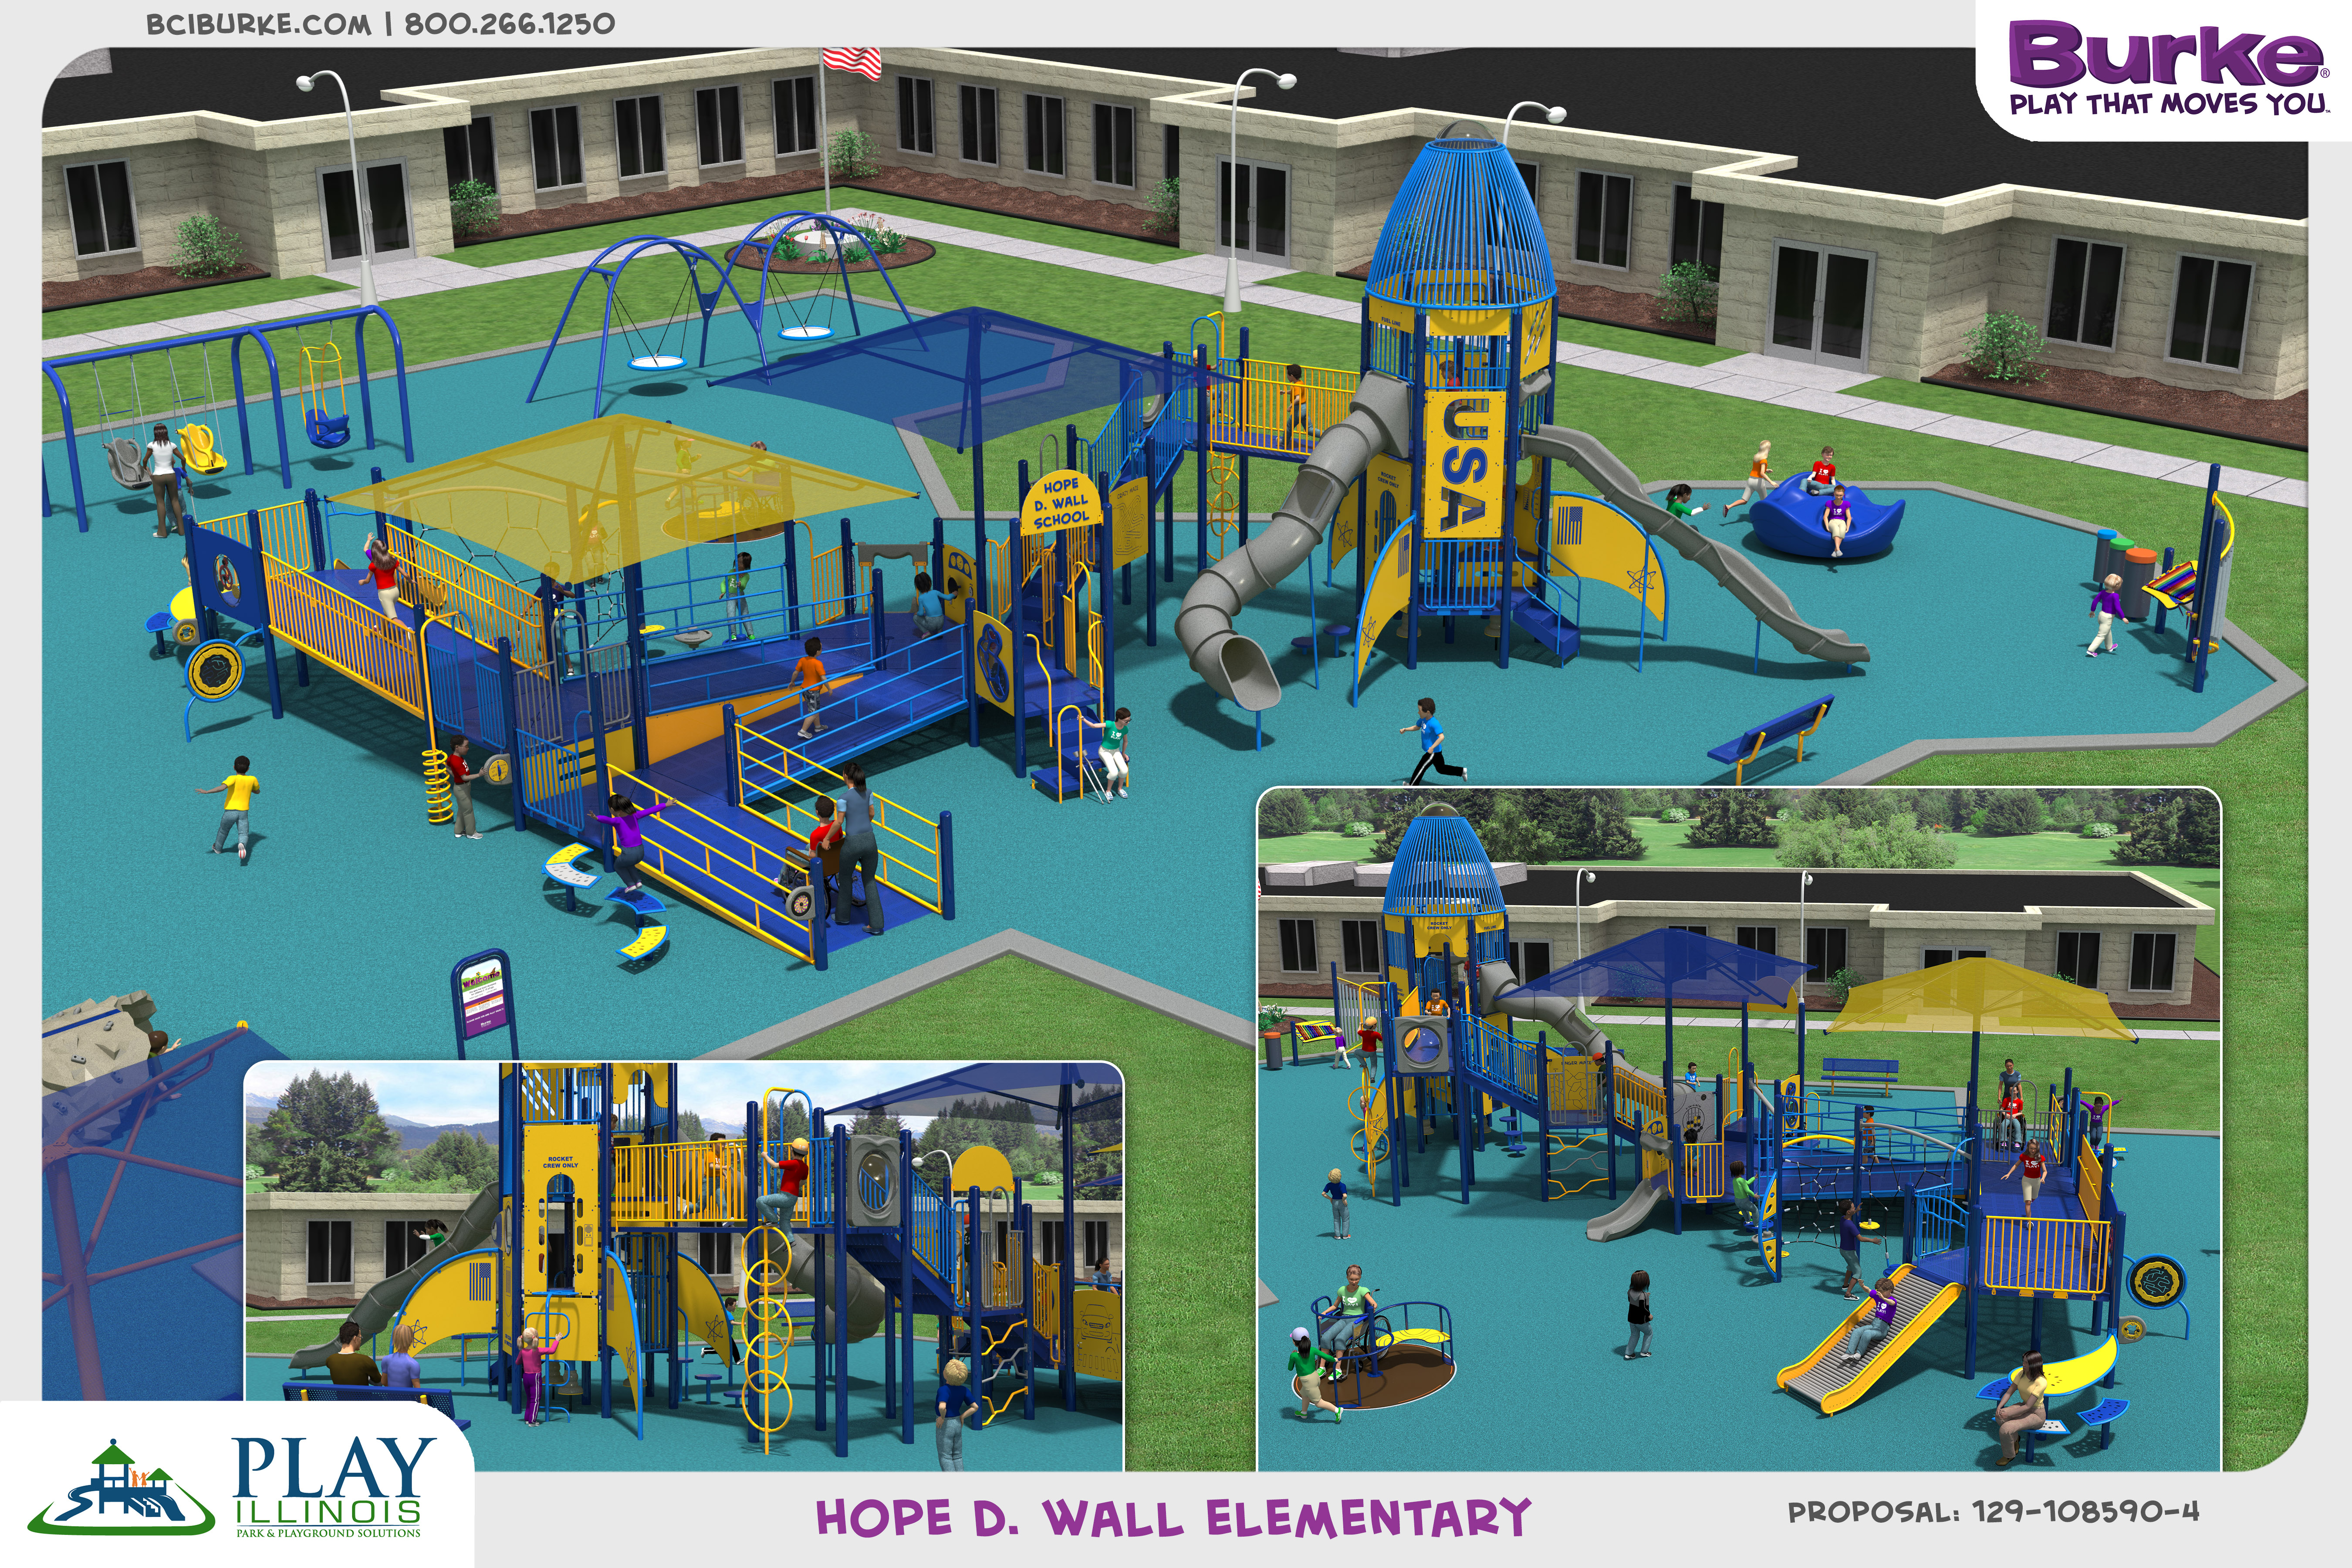 129-108590-4B-_MC_HopeDWallElemen dream build play experience accessible playgrounds